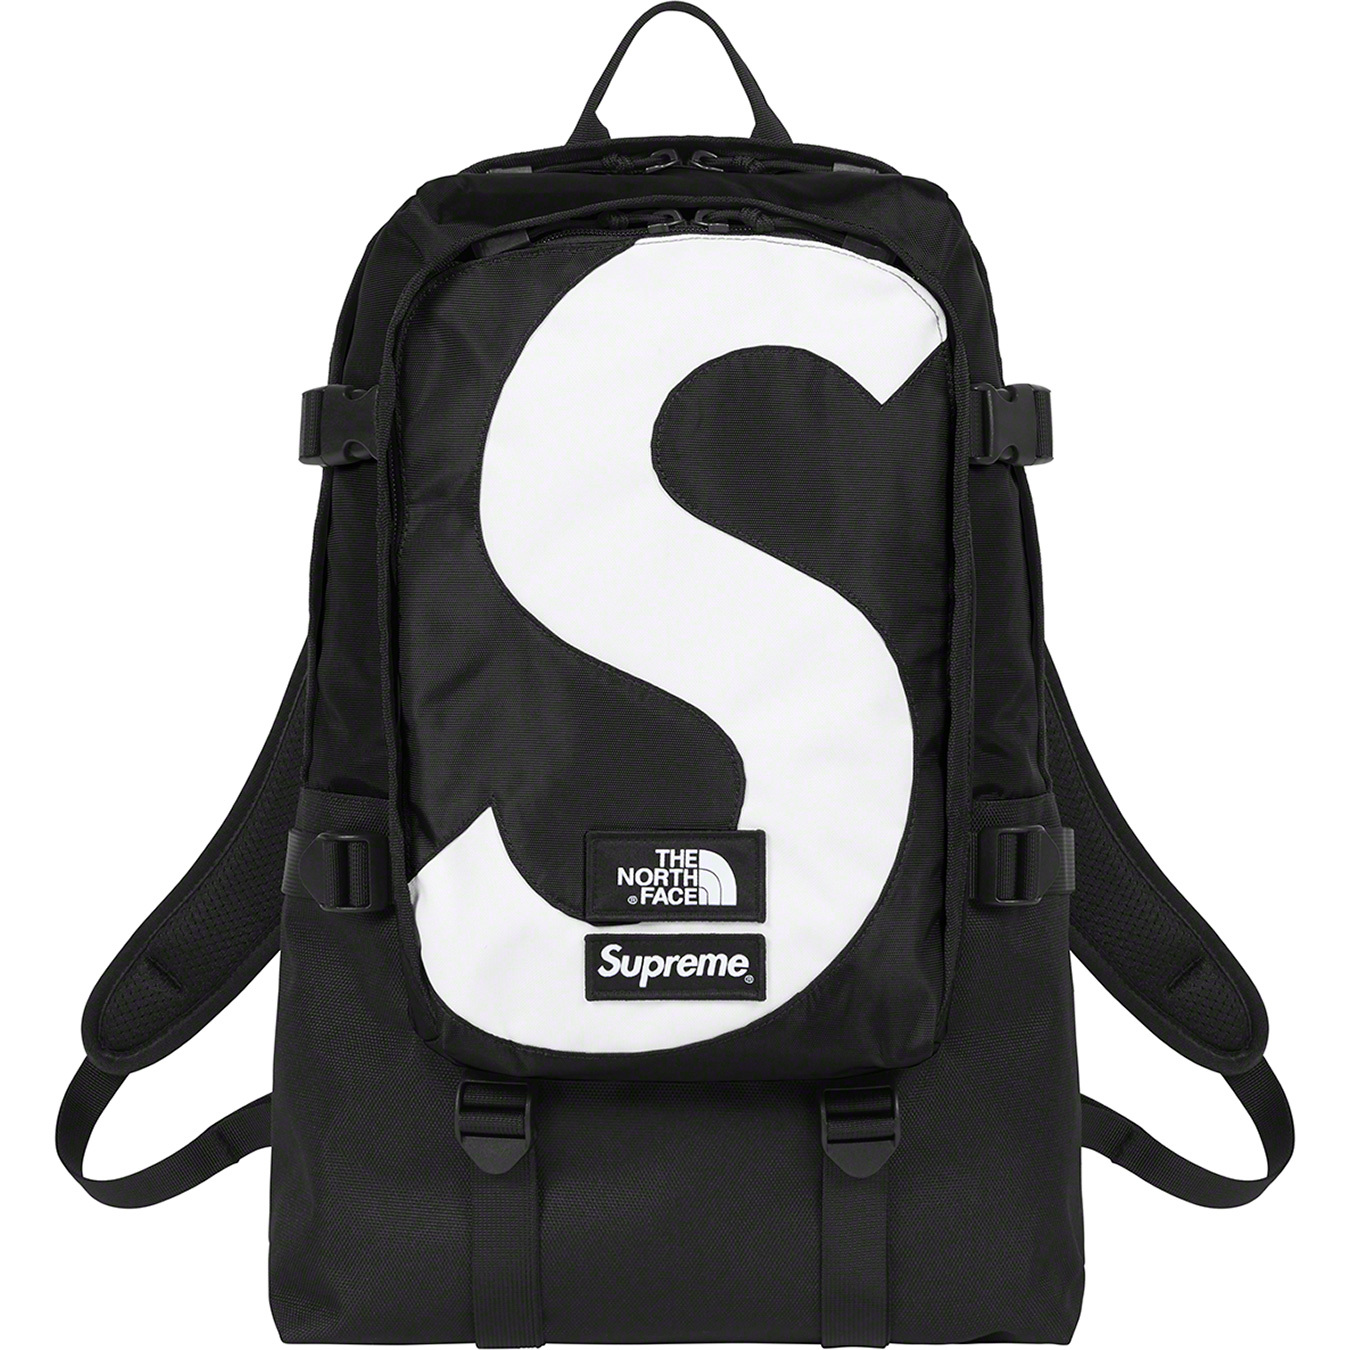 supreme-the-north-face-20aw-20fw-s-logo-collaboration-release-20201031-week10-backpack